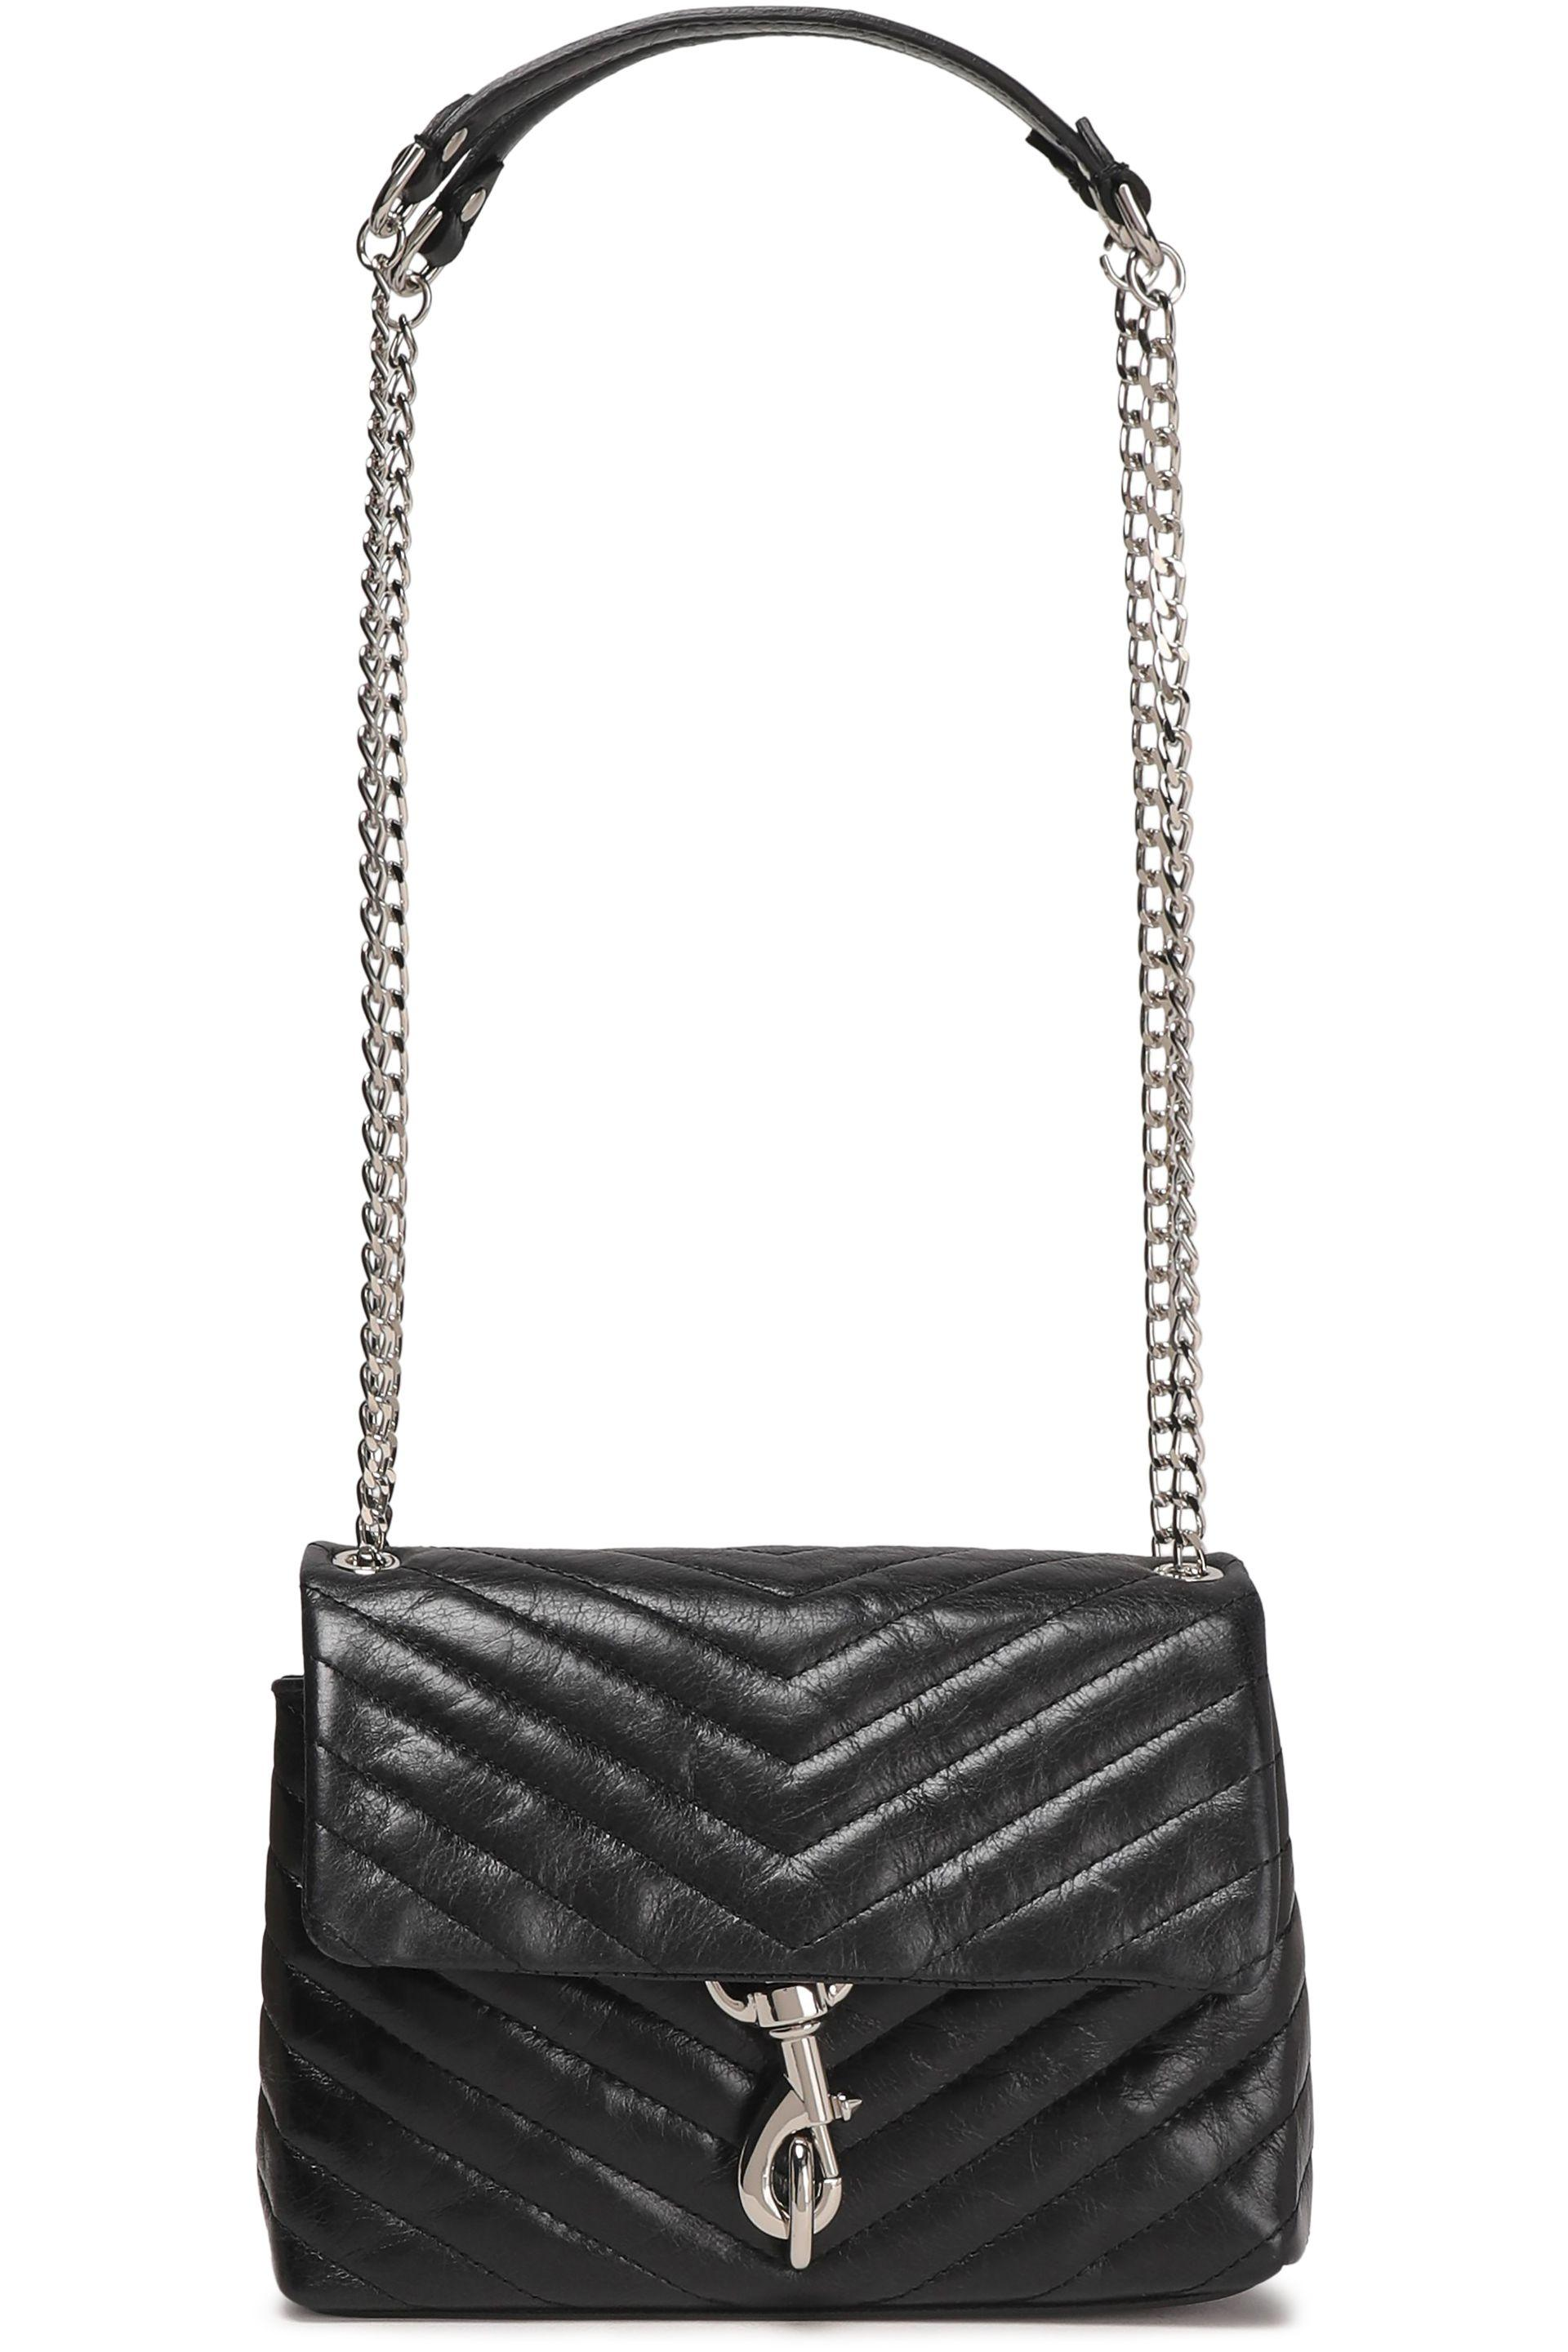 a50eeb66d934b Rebecca Minkoff. Women s Woman Chain-trimmed Quilted Leather Shoulder Bag  Black